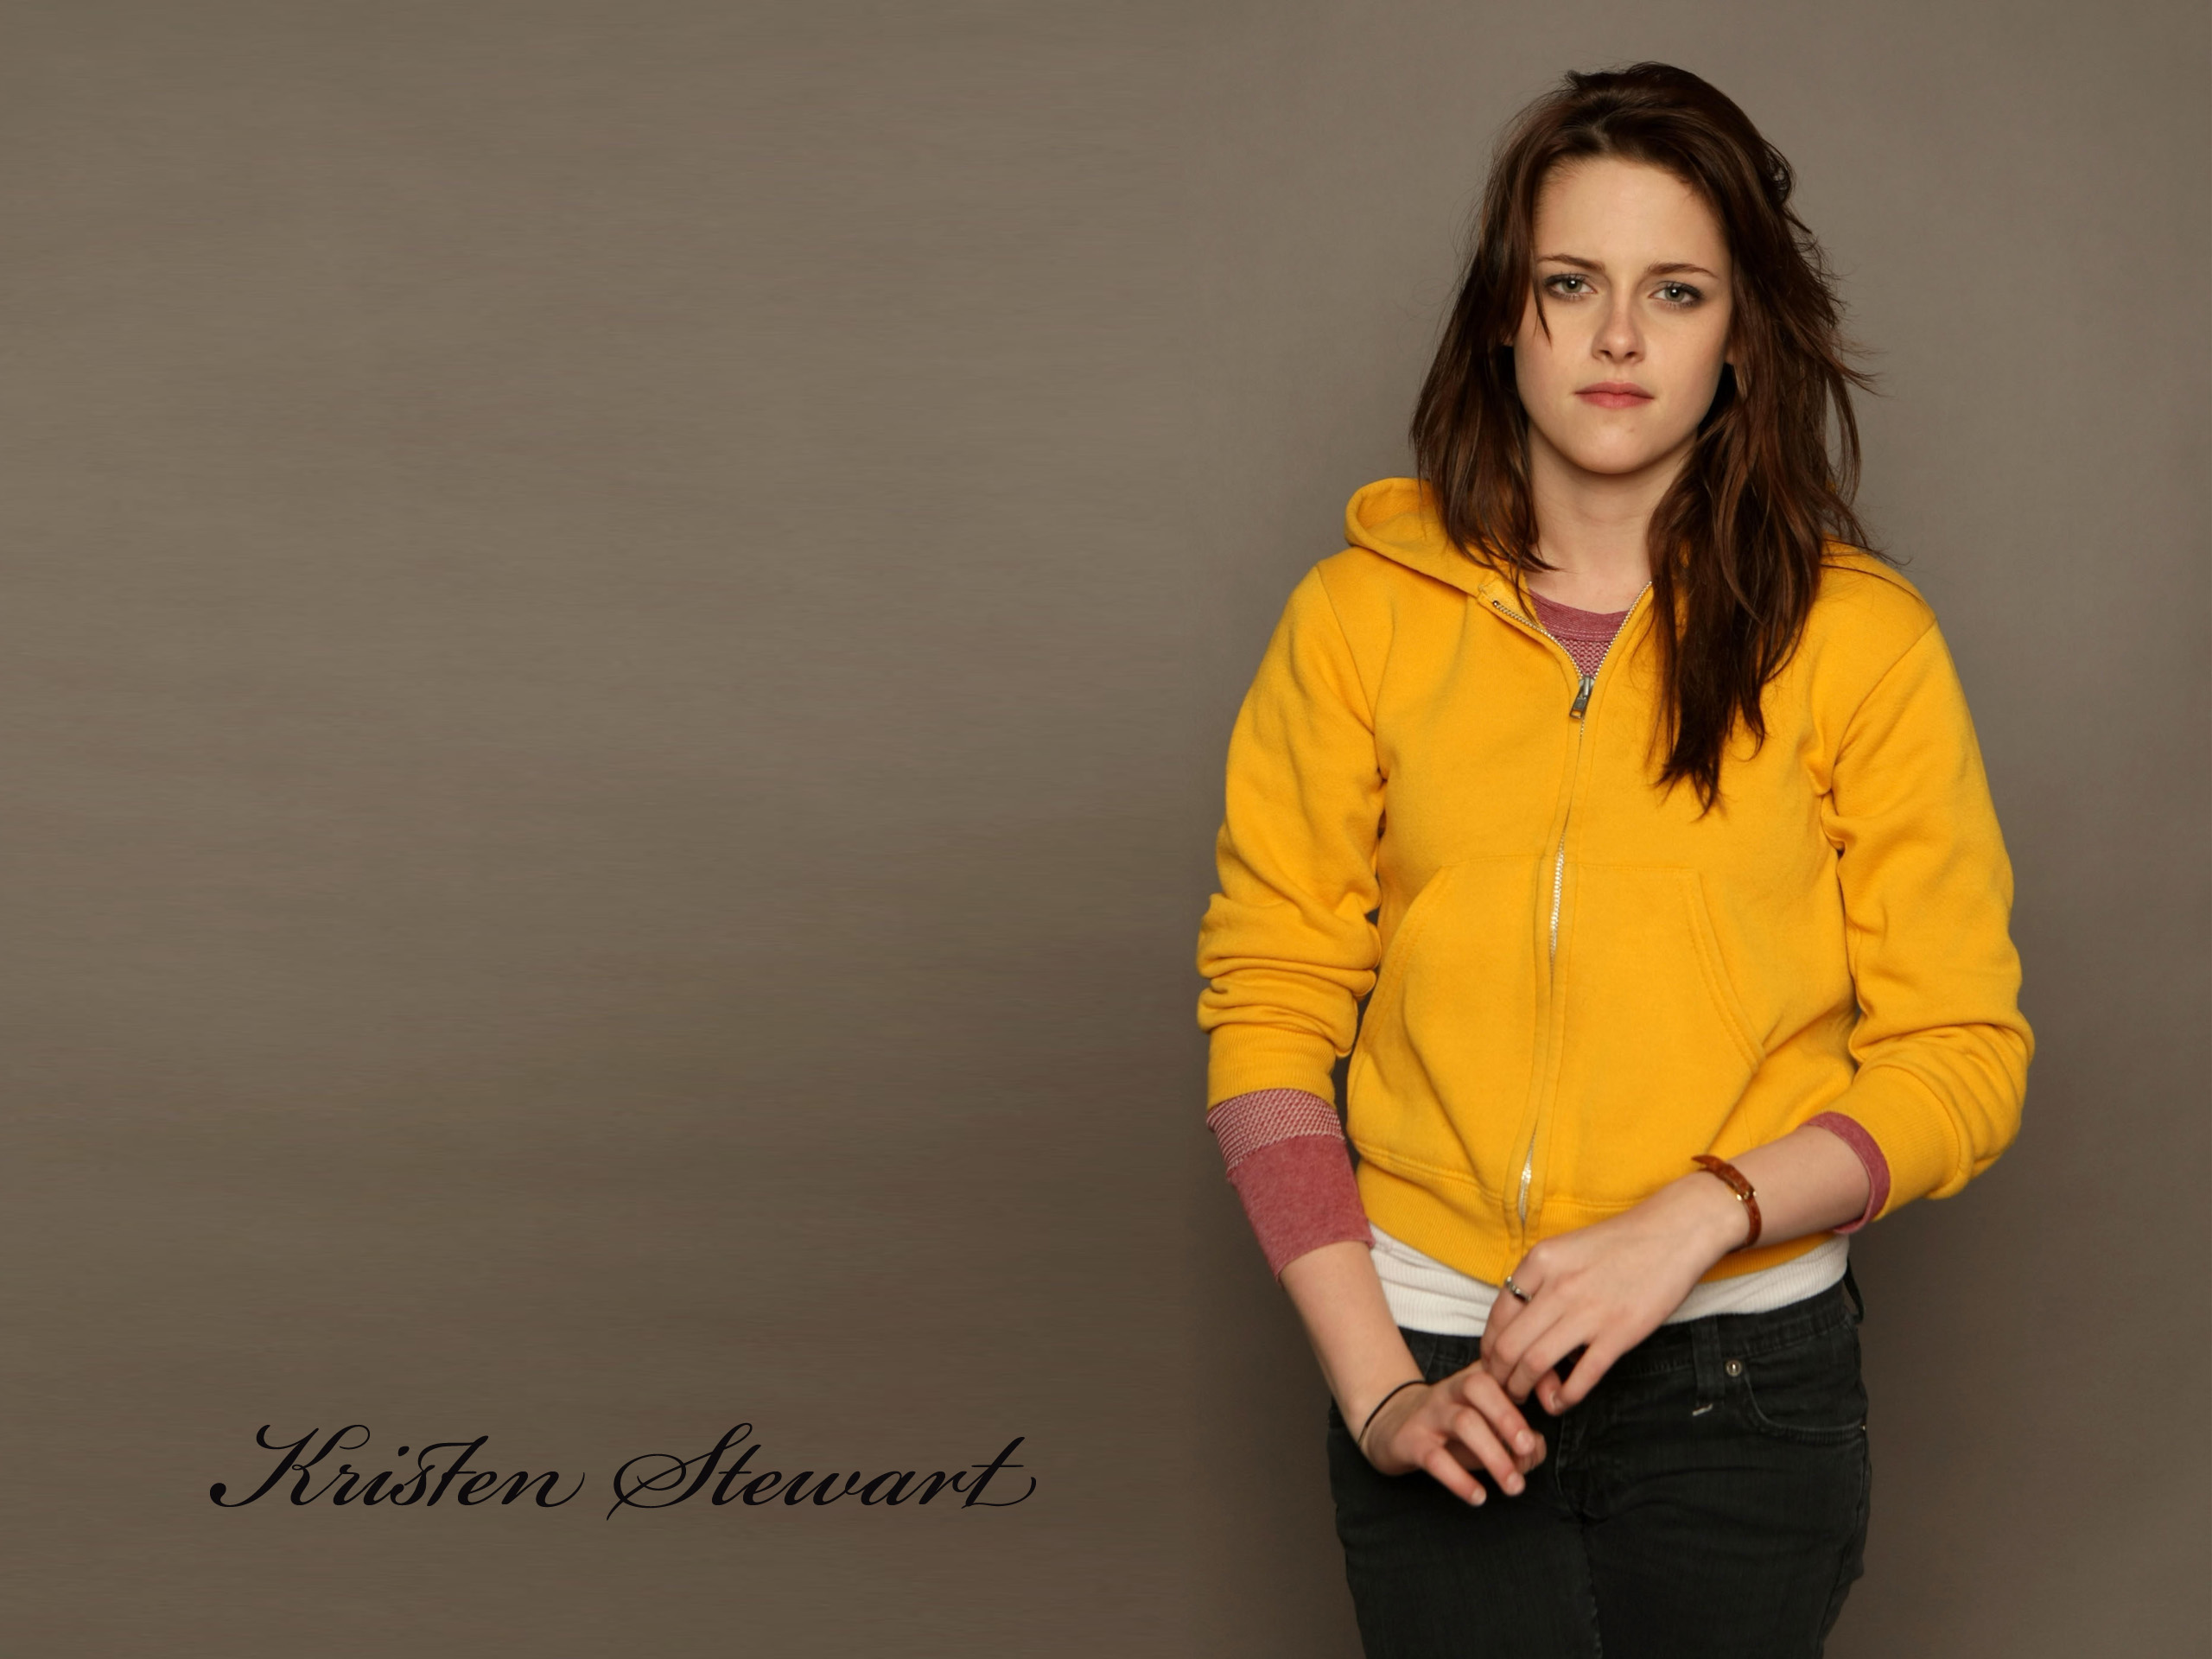 Cute Tomboy Wallpaper Kristen Stewart Hd Wallpapers Hd Wallpapers Id 847